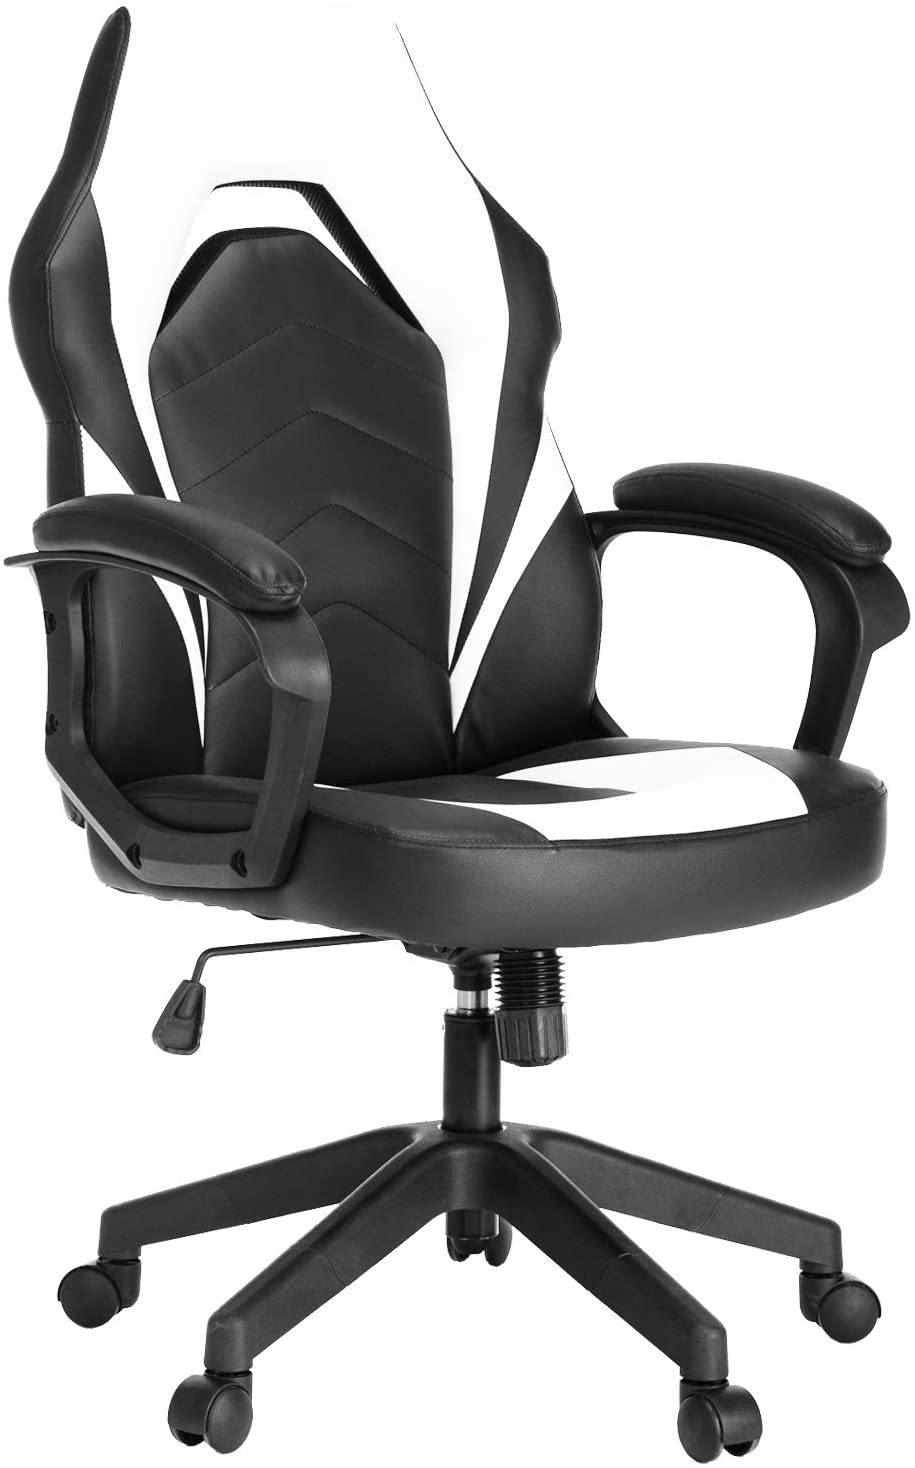 Racing Gaming Chair Executive Bonded Leather Computer Office Chair with Adjustable Height and Padding Armrest - AzraTec